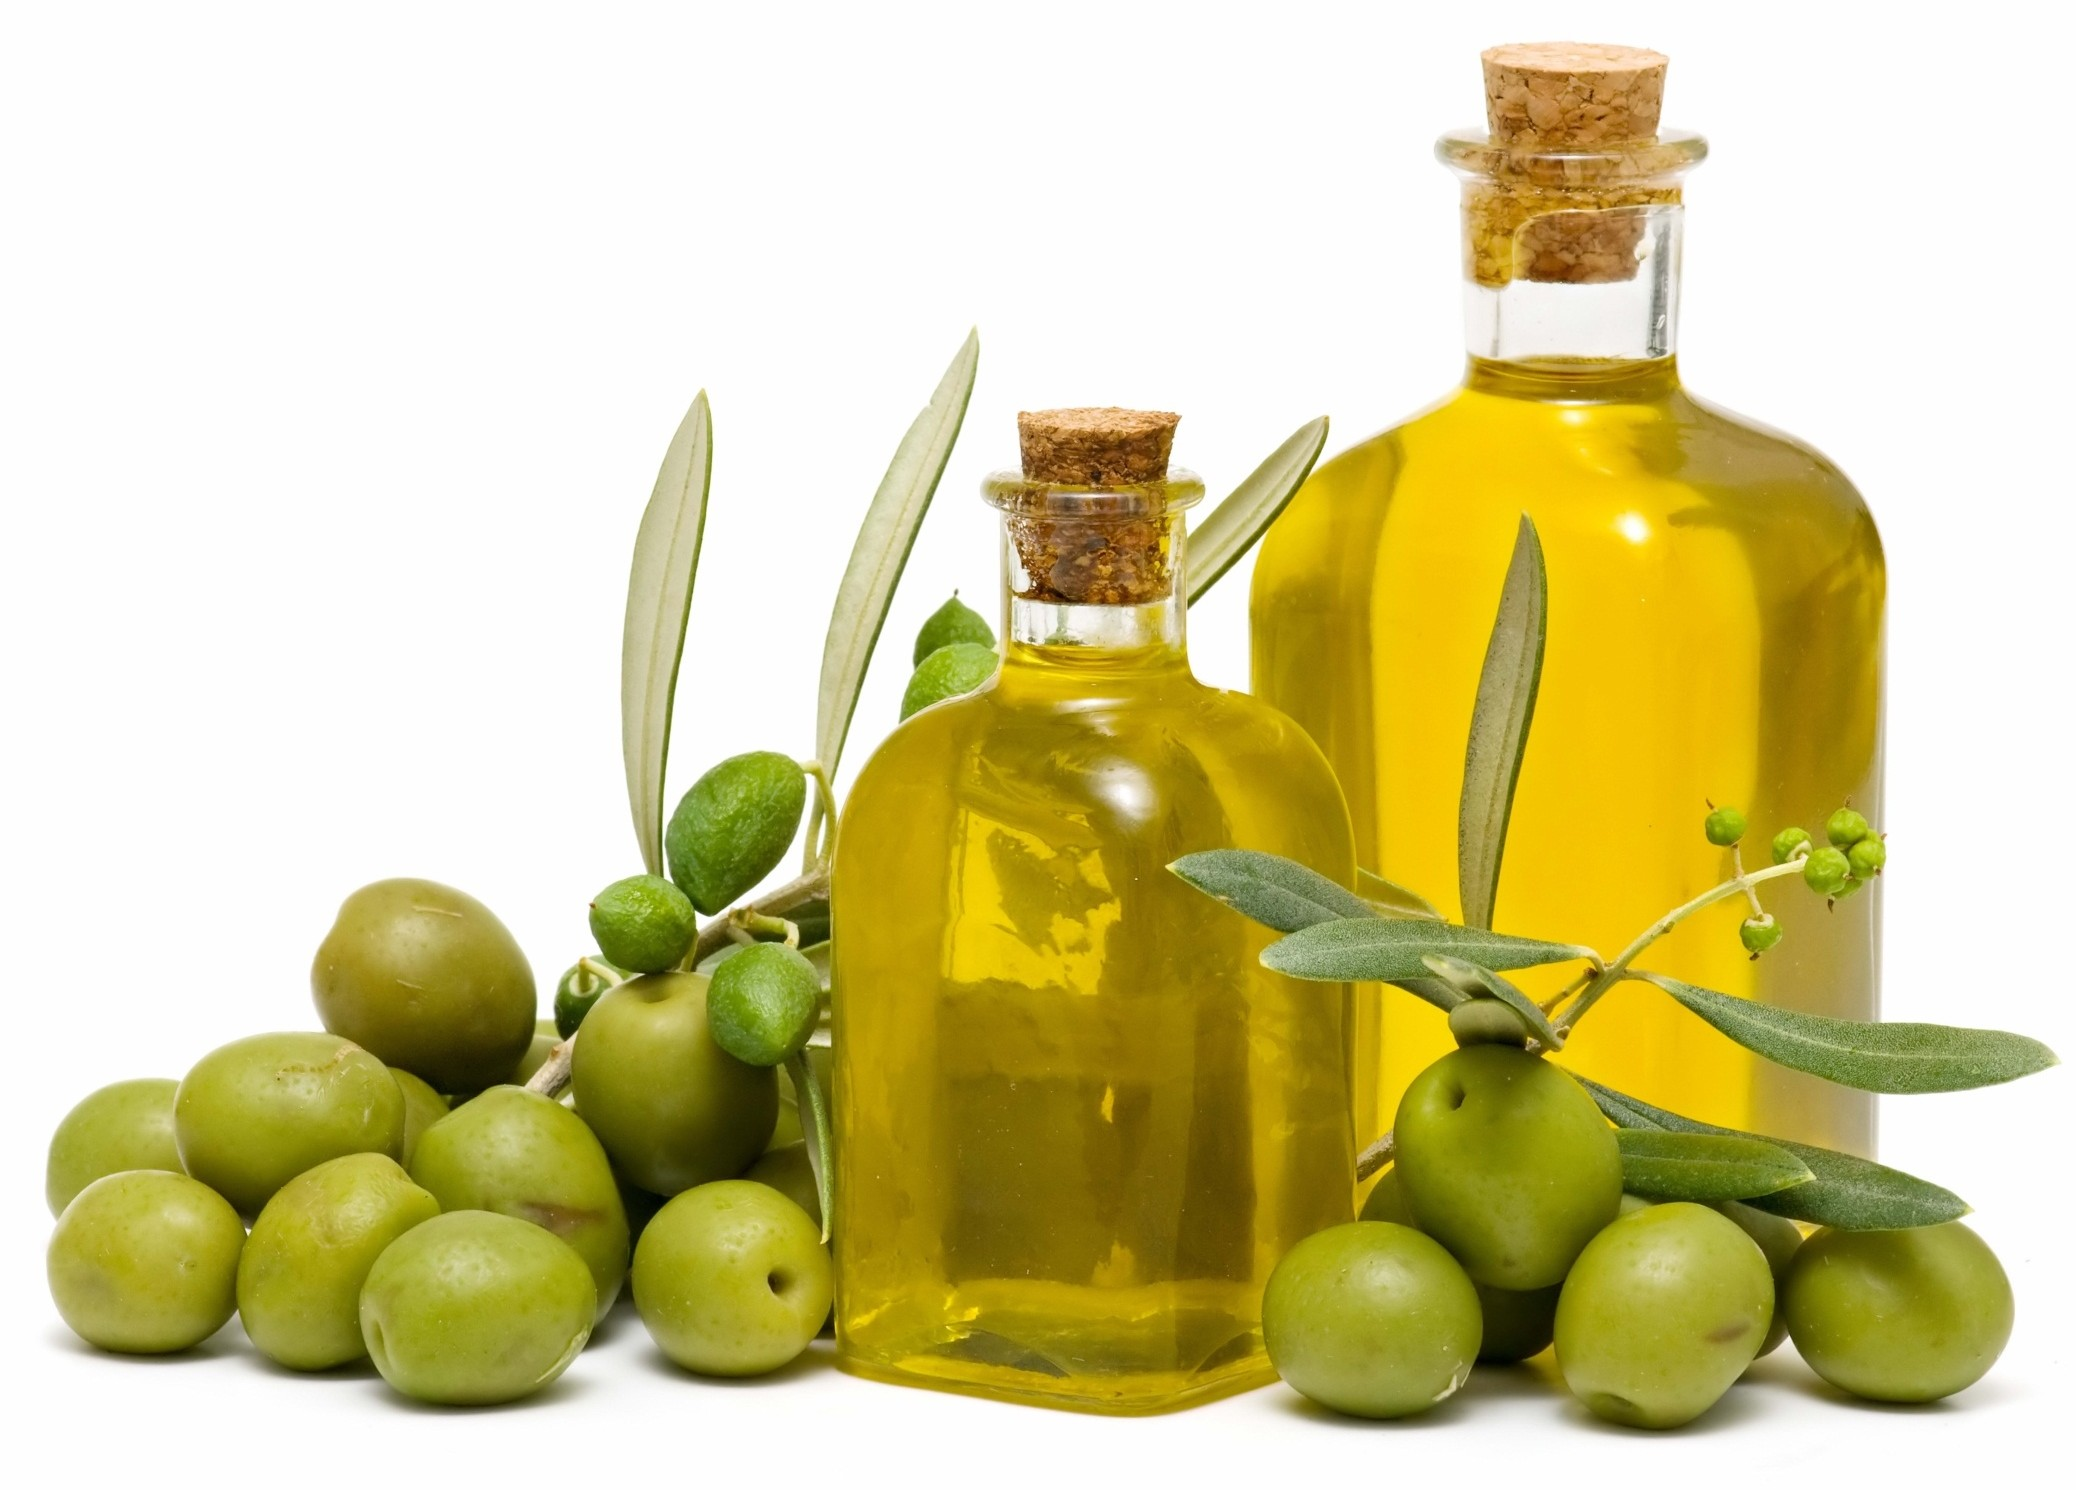 A company based in England is interested by the tunisan olive oil